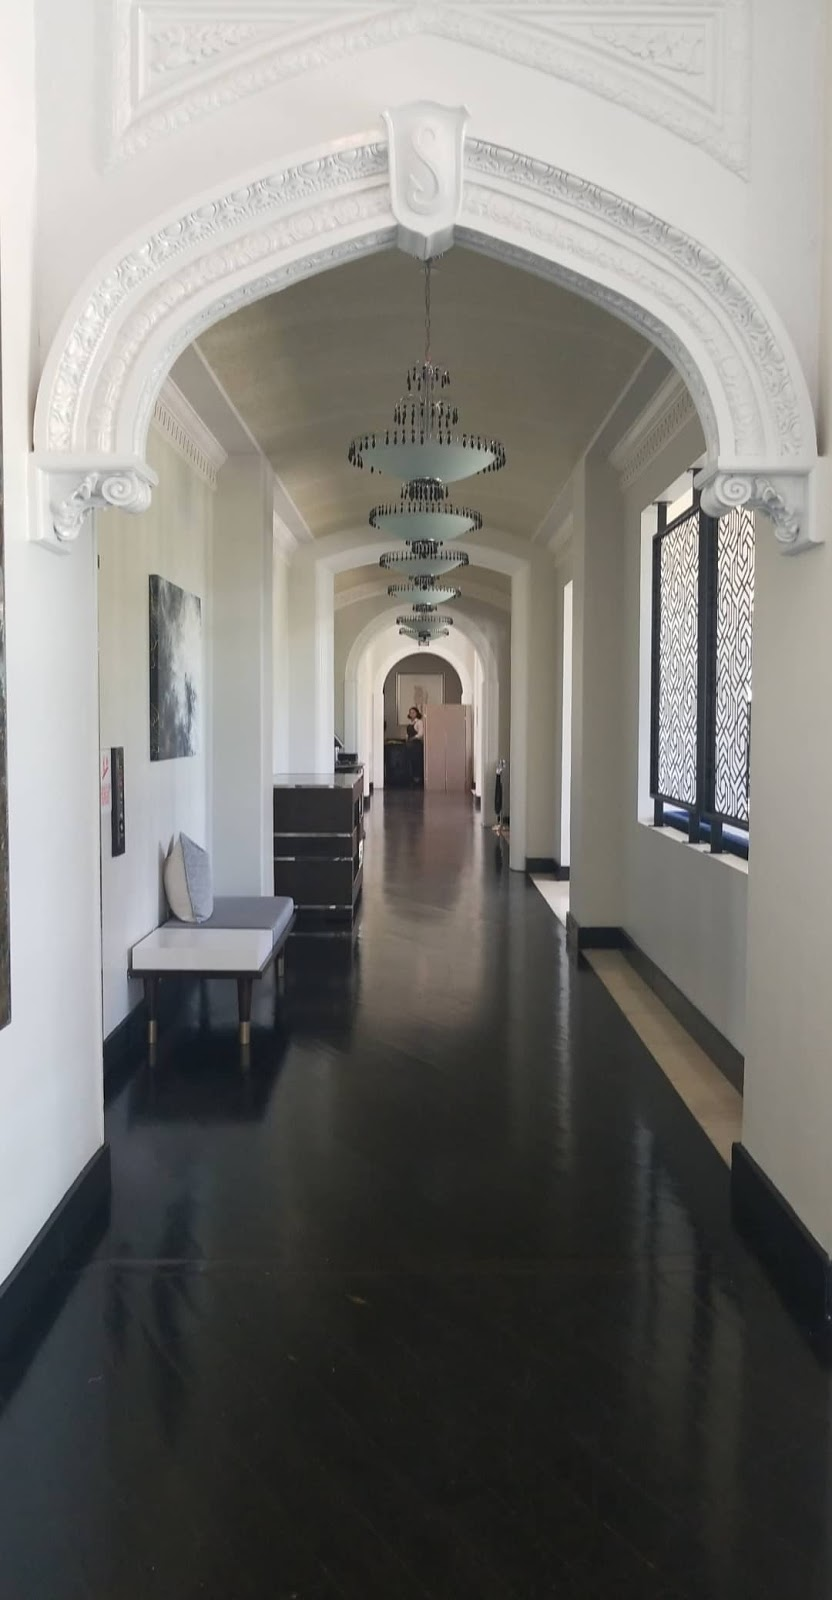 My stay at the historic, Art Deco hotel, located in uptown Dallas